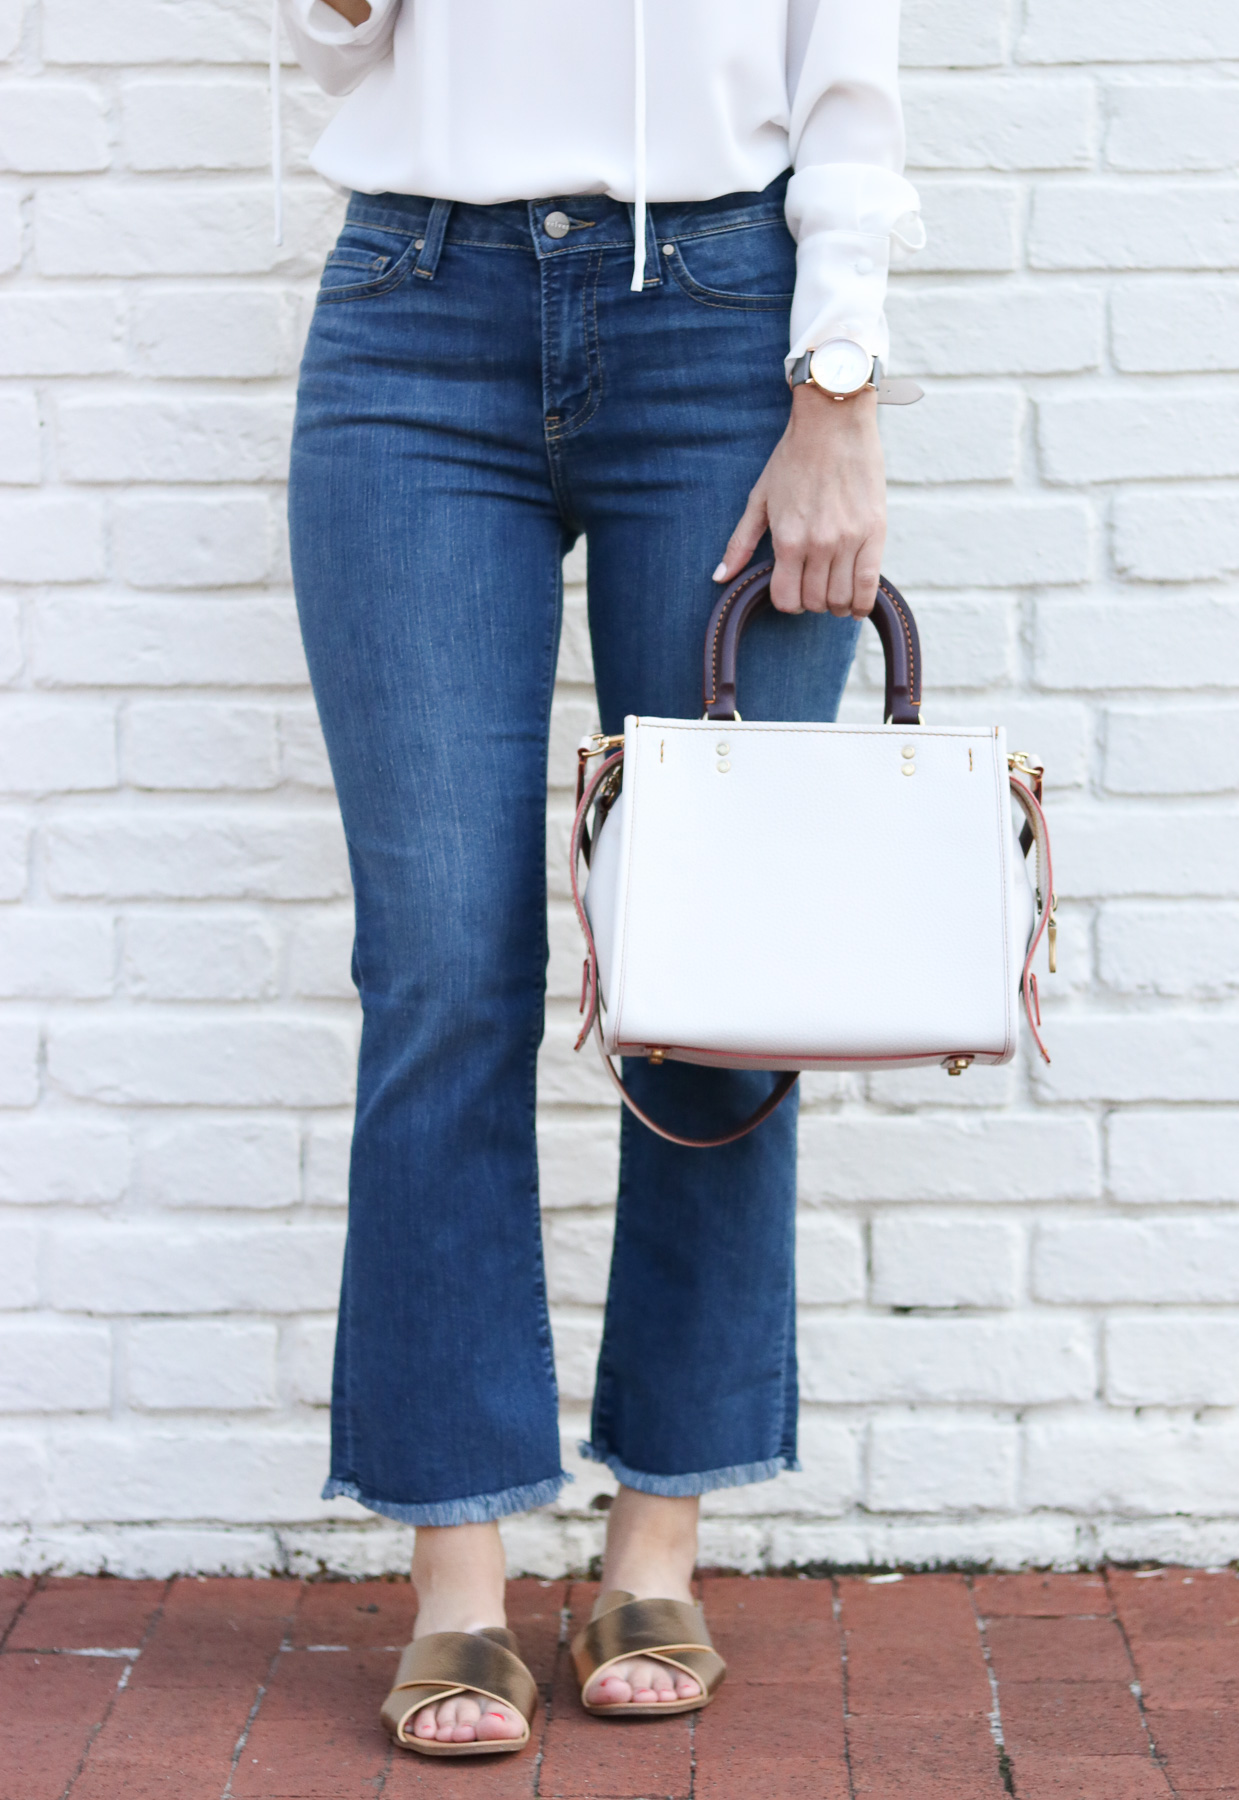 White Coach Bag - Cropped Flare Denim - Lace Up Top @cobaltchronicle